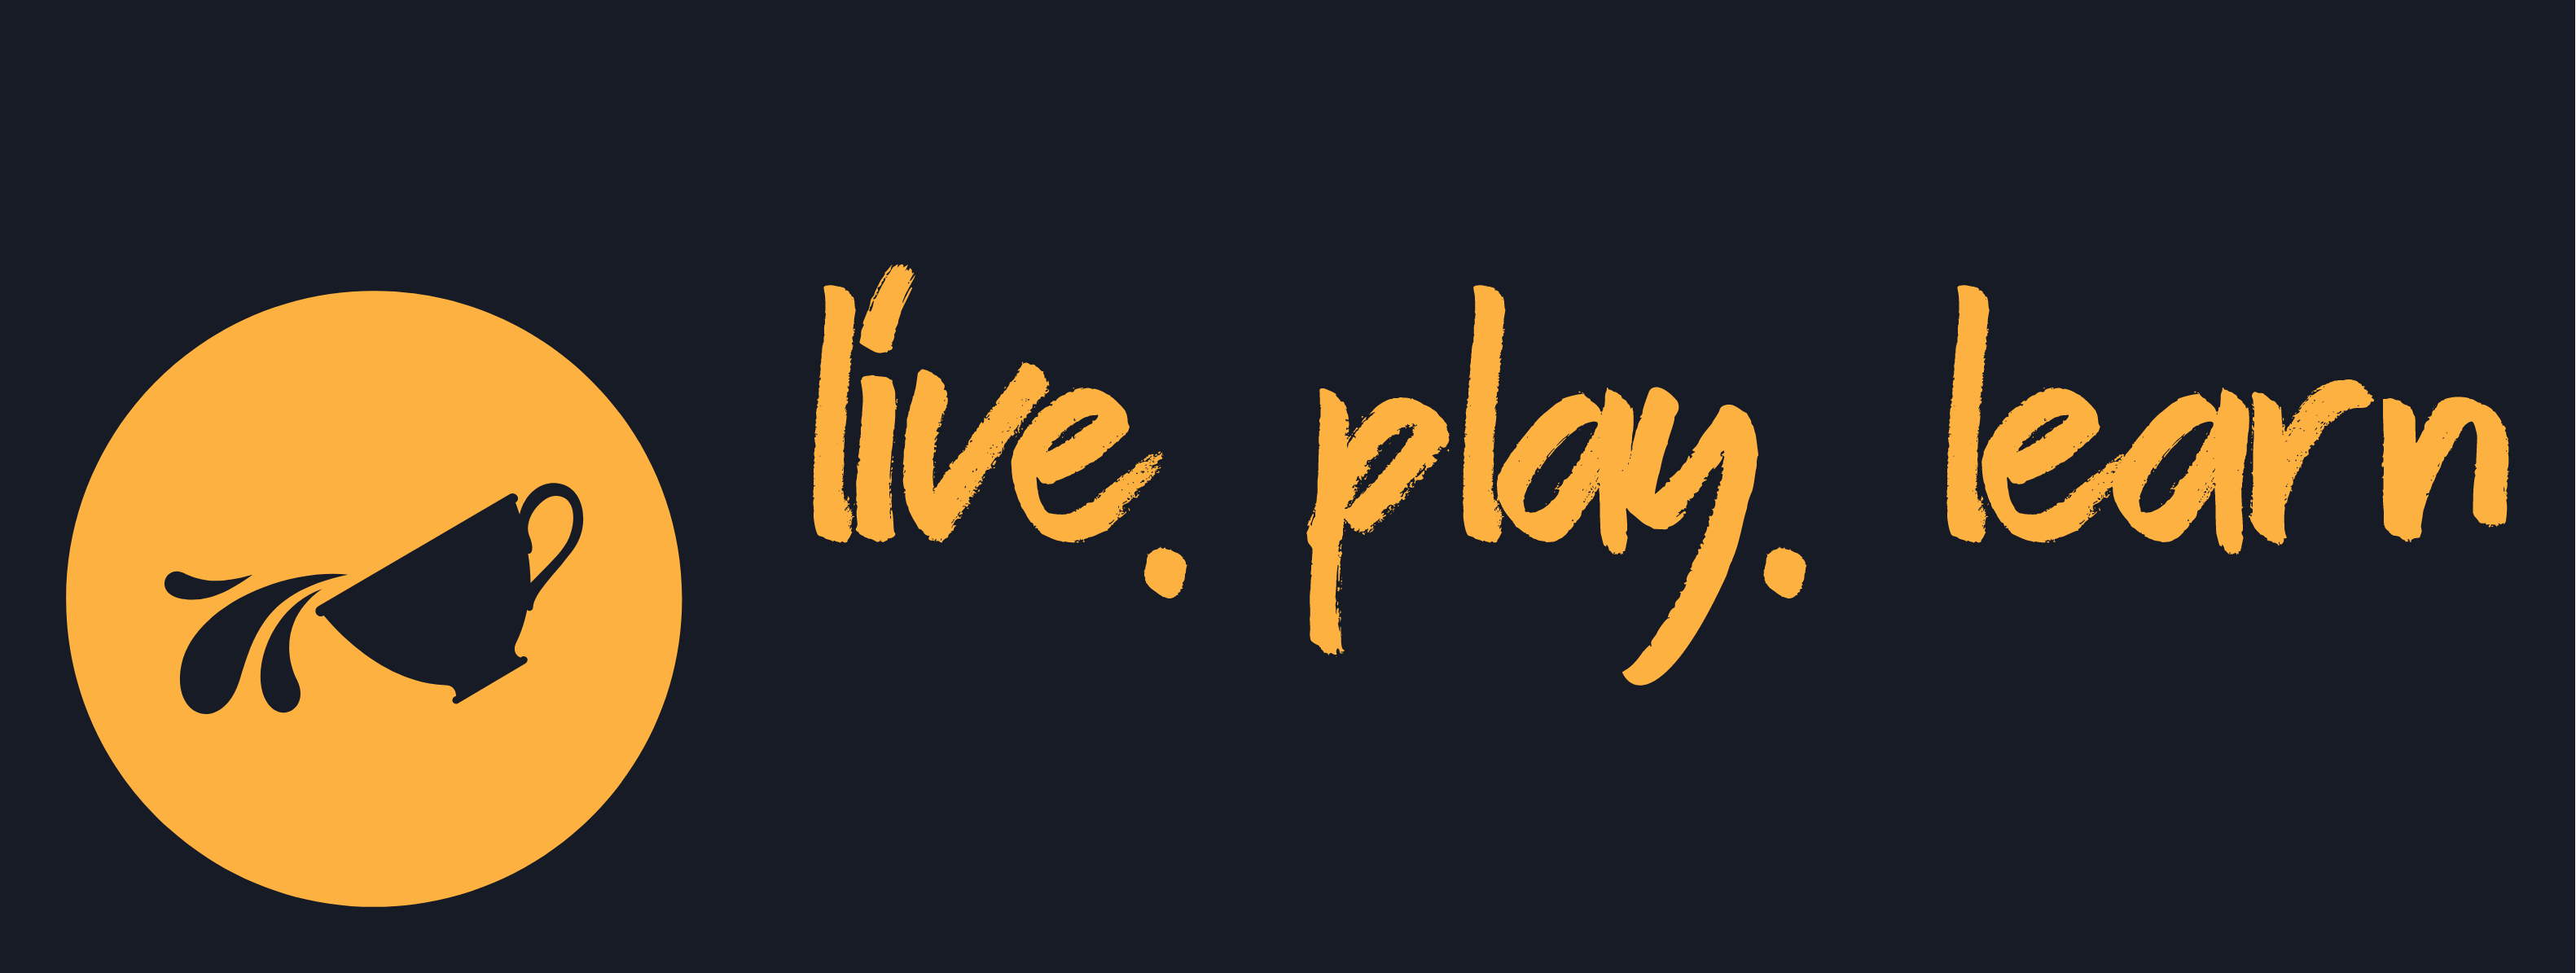 Live. Play. Learn